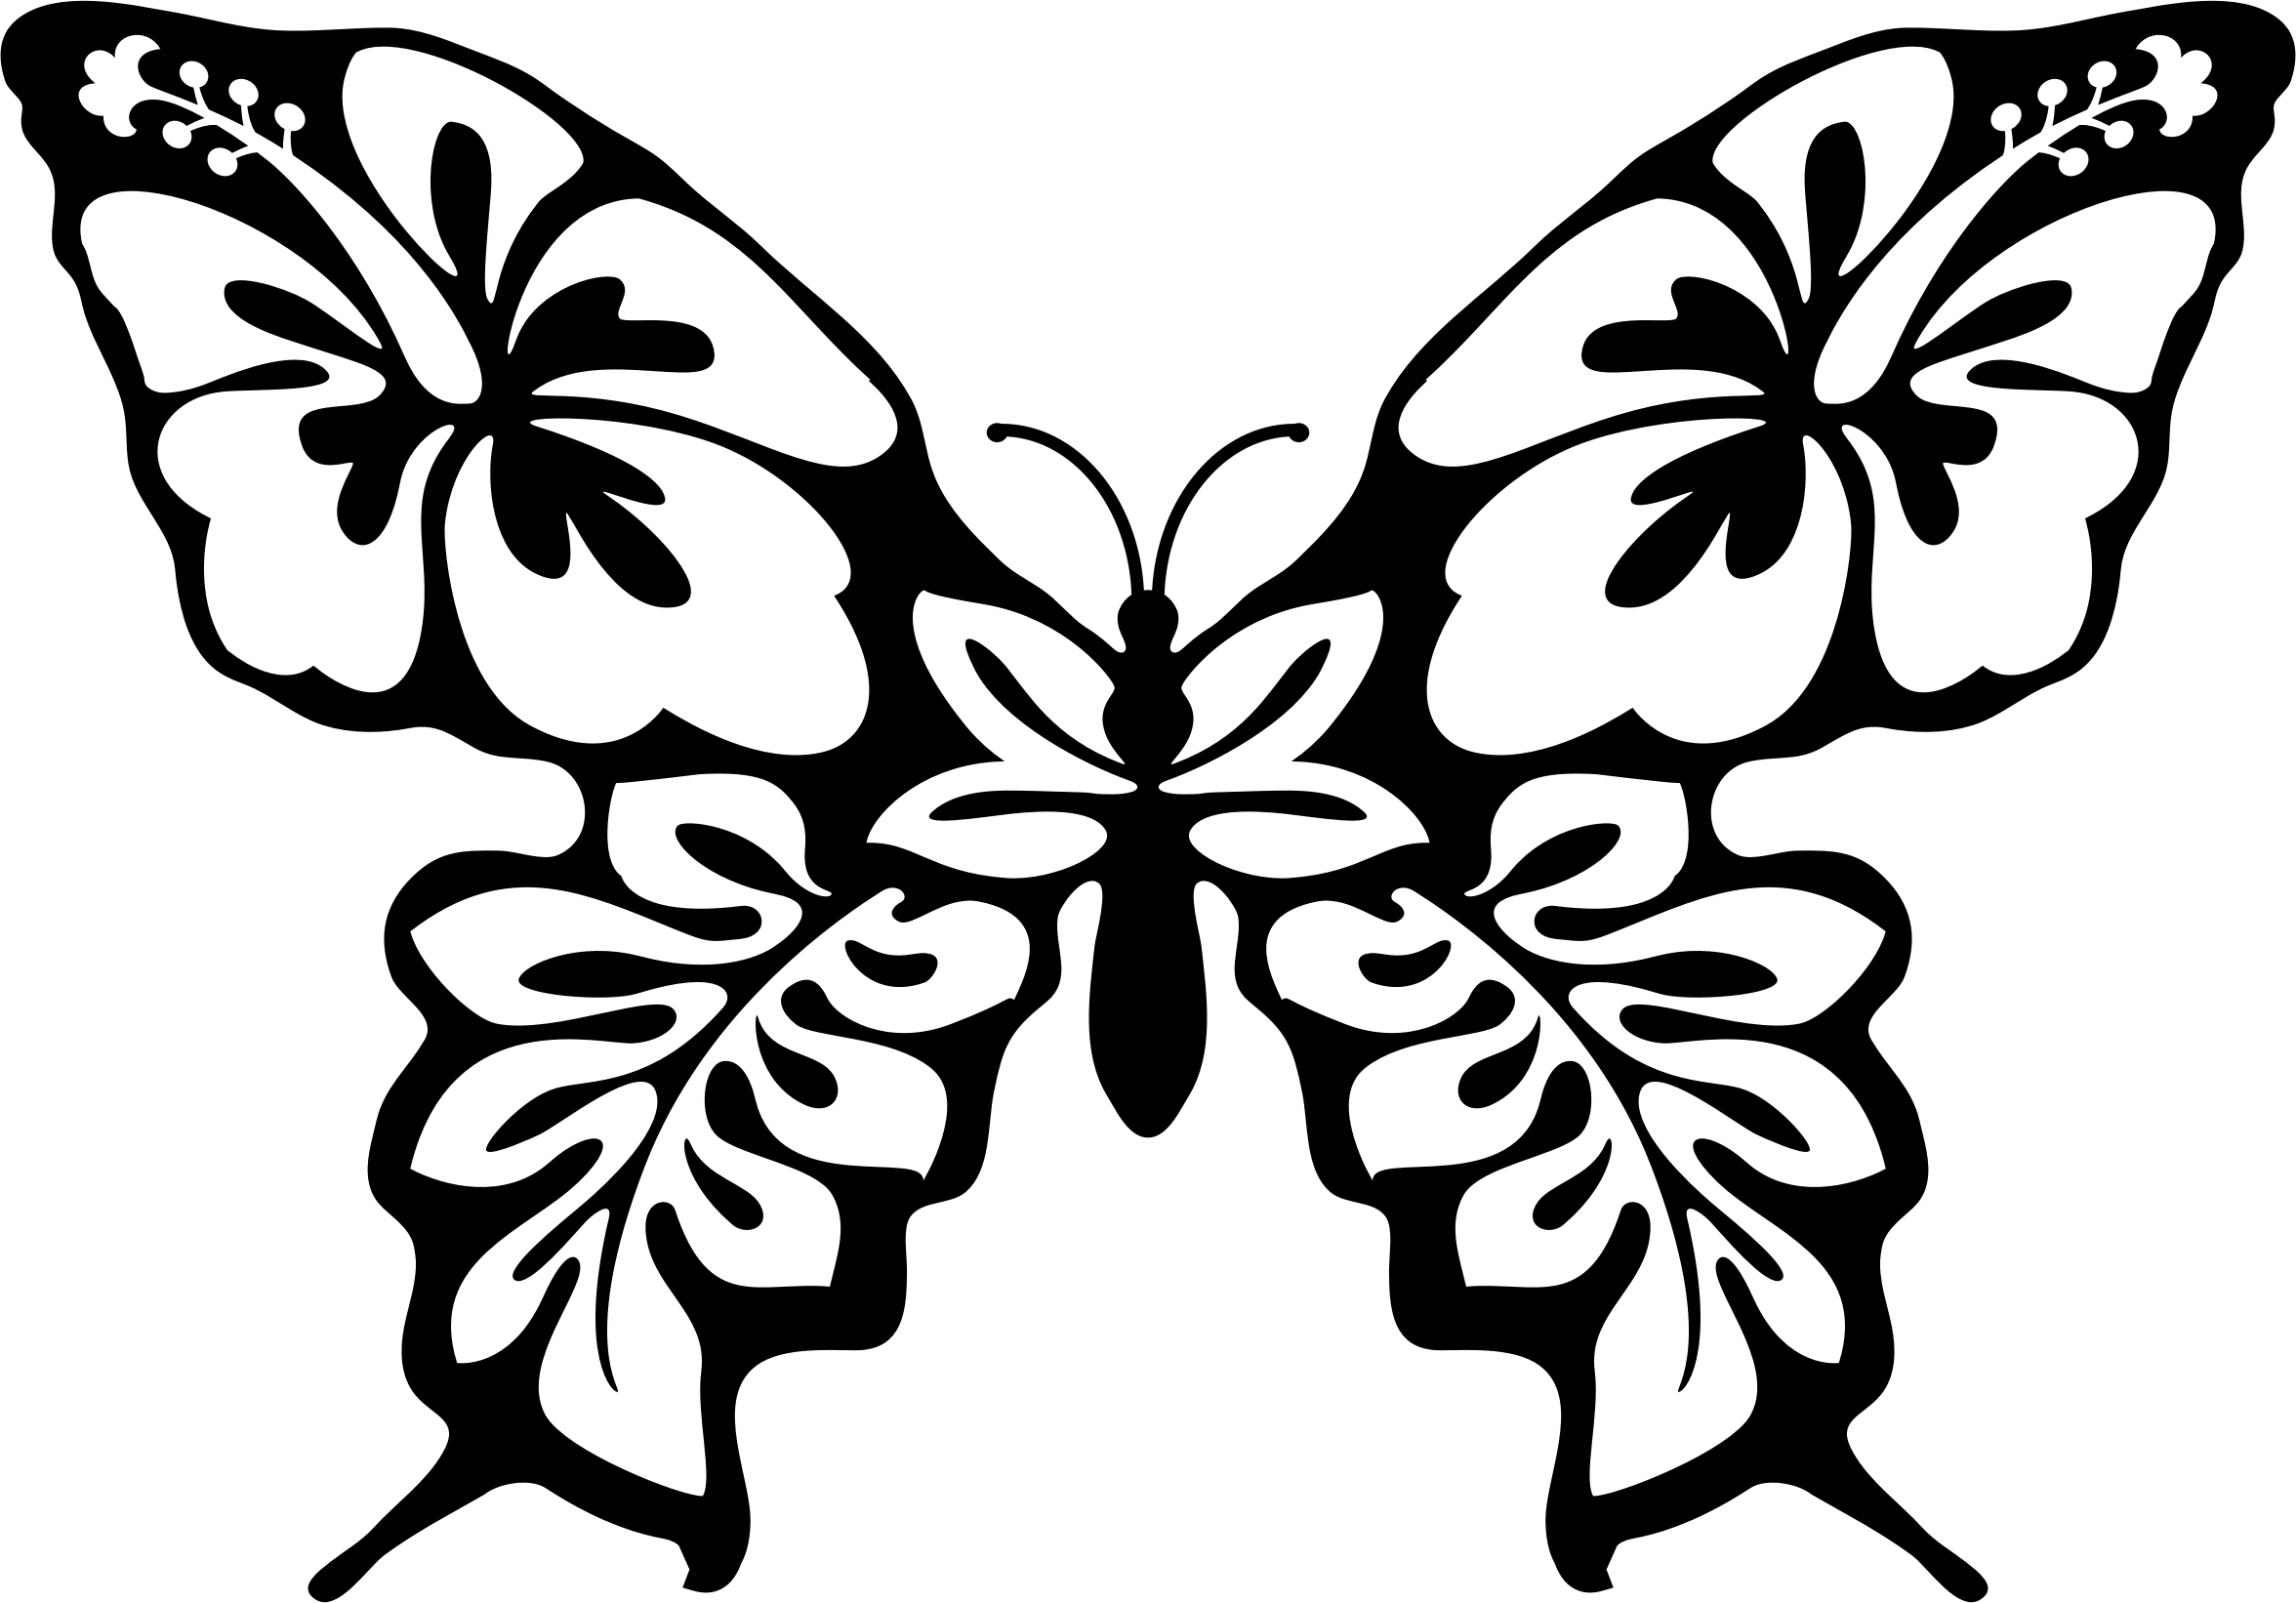 Funny flower clipart graphic library download Clipart - Butterfly Flower Line Art graphic library download